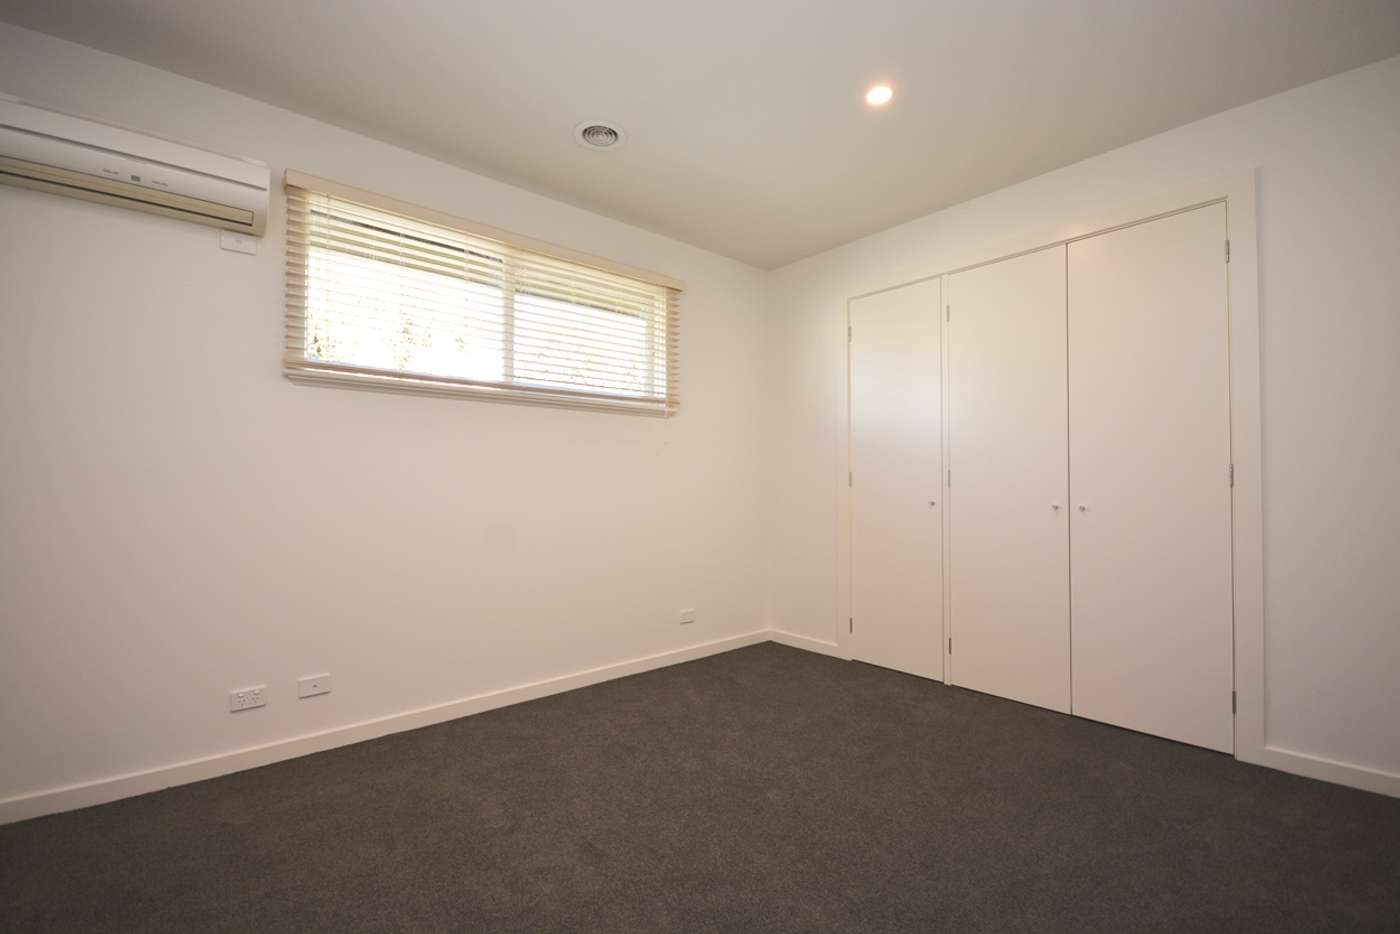 Sixth view of Homely townhouse listing, 247 Hotham Street, Elsternwick VIC 3185